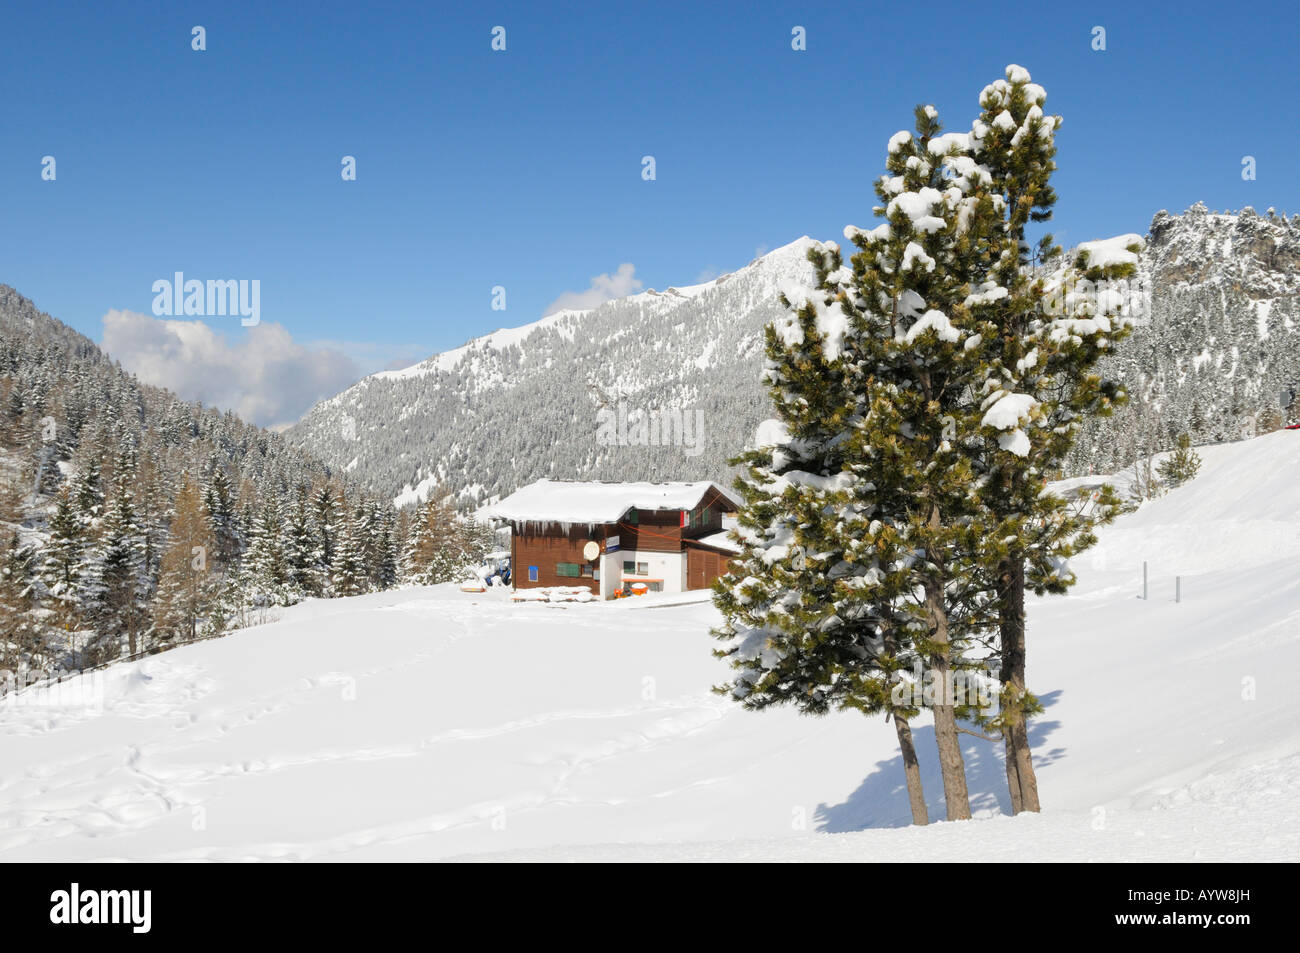 Winter Ski resort, Malbun FL - Stock Image